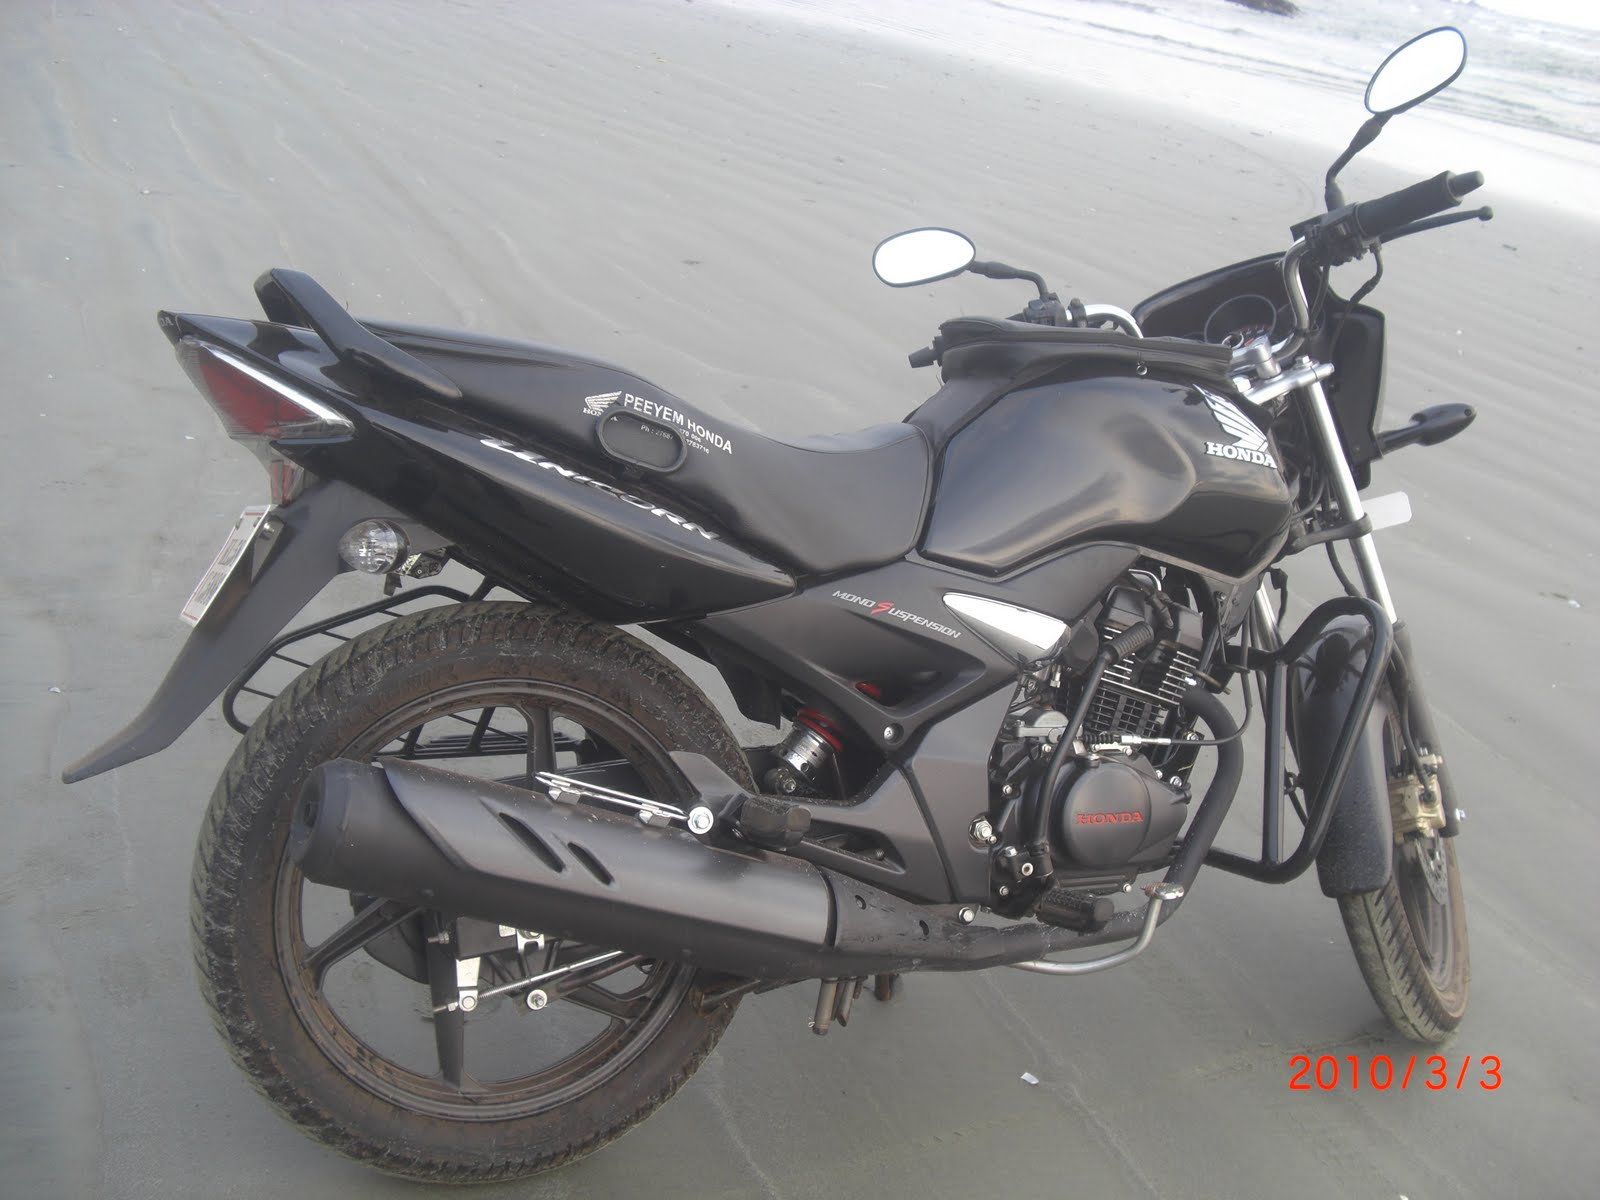 honda unicorn The stylish honda cb unicorn is a powerful motorcycle with 160cc engine giving  better performance & mileage explore the features, specs & price.